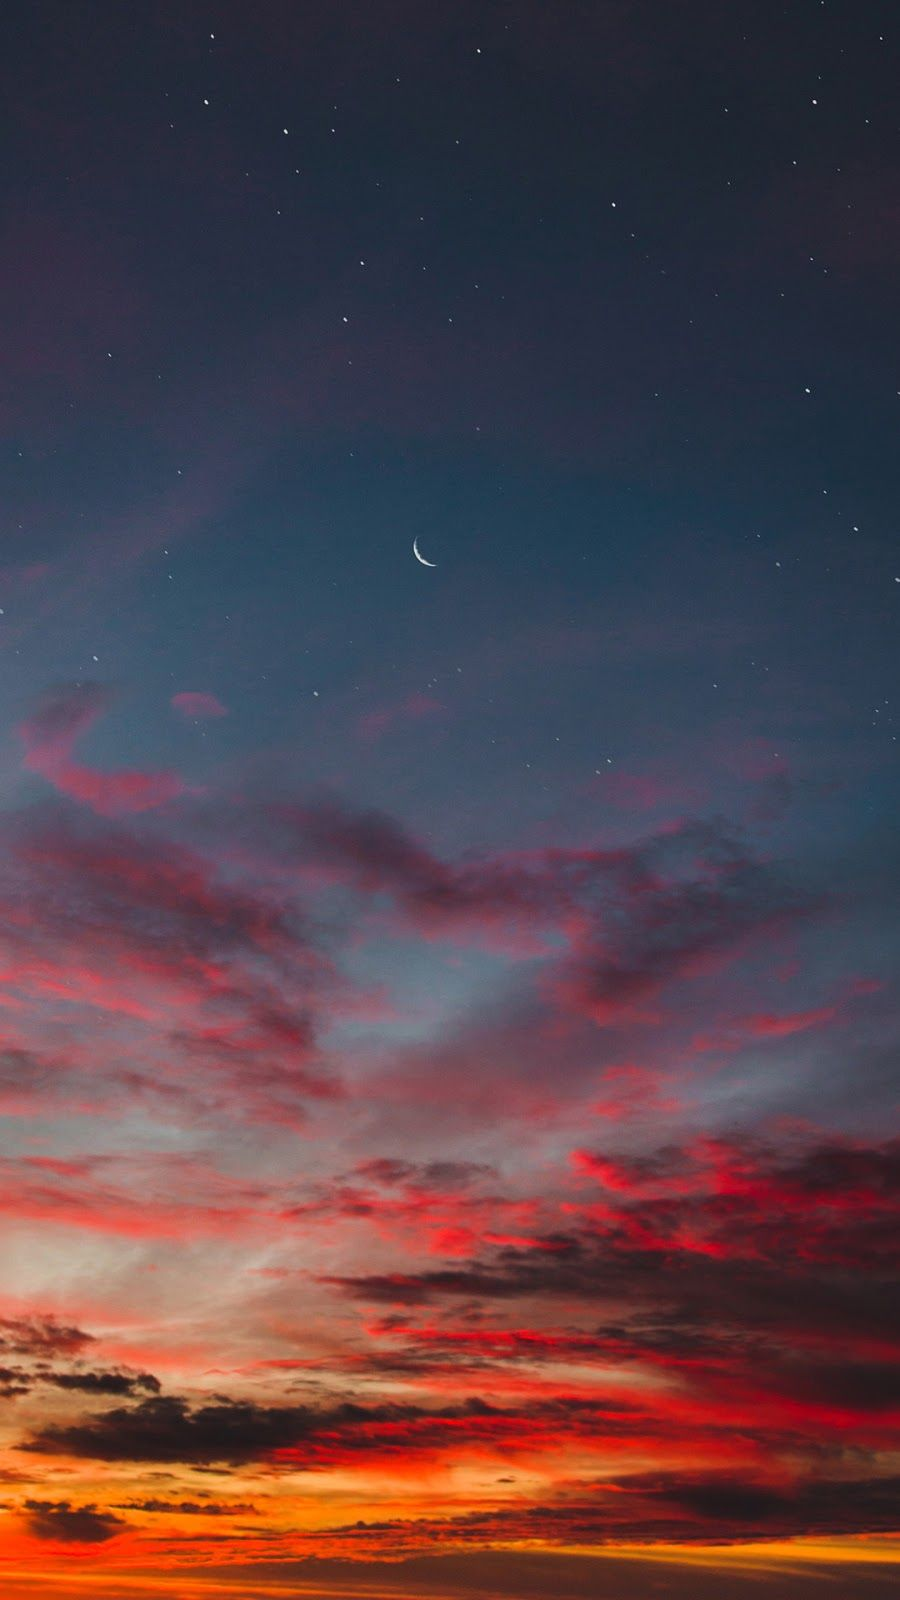 Red Cloud In The Night Sky Iphone Wallpaper Sky Night Sky Wallpaper Sky Aesthetic